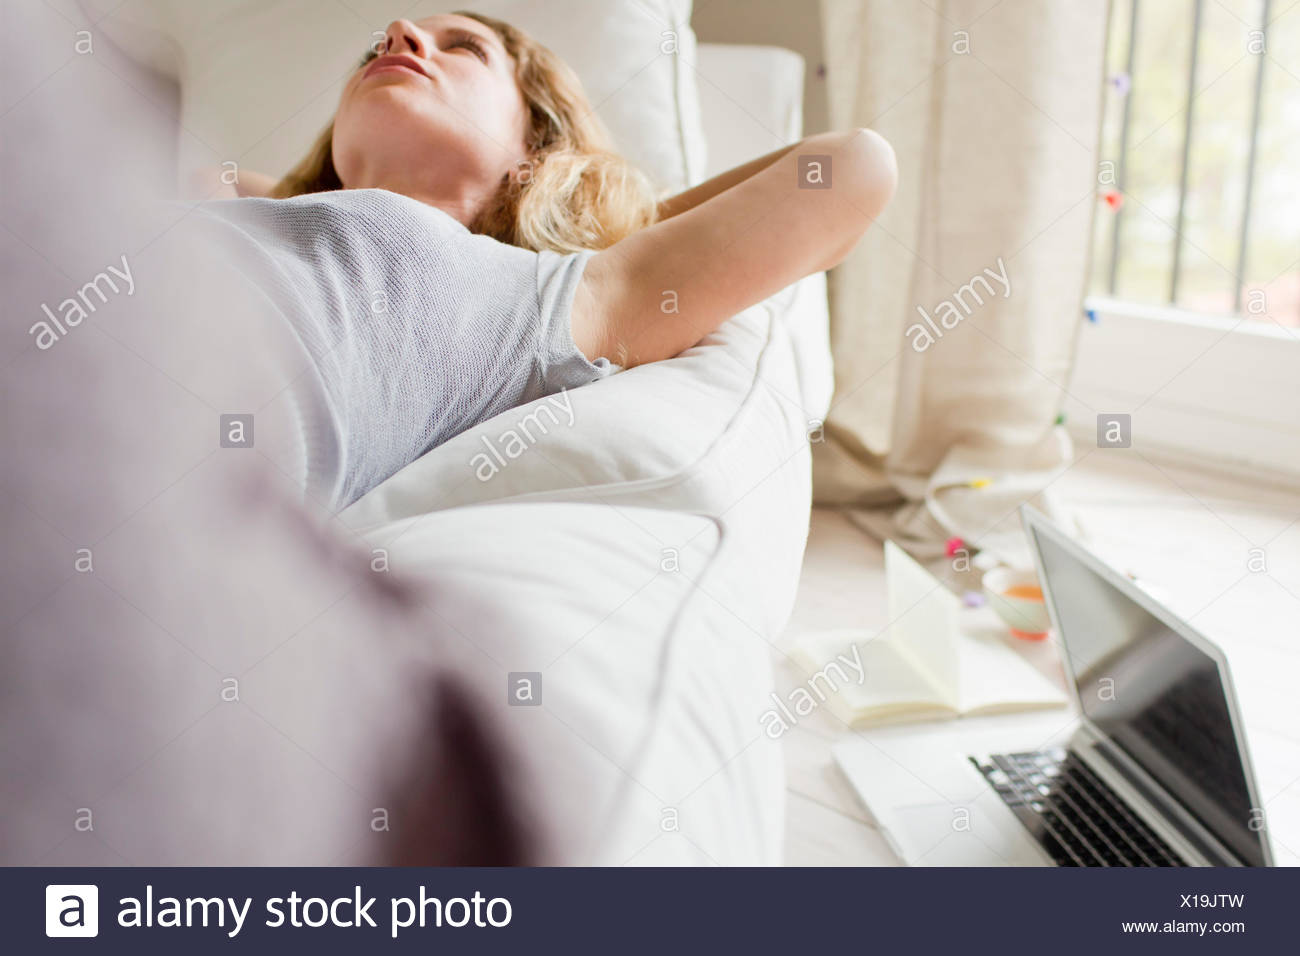 Woman lying on sofa day-dreaming - Stock Image